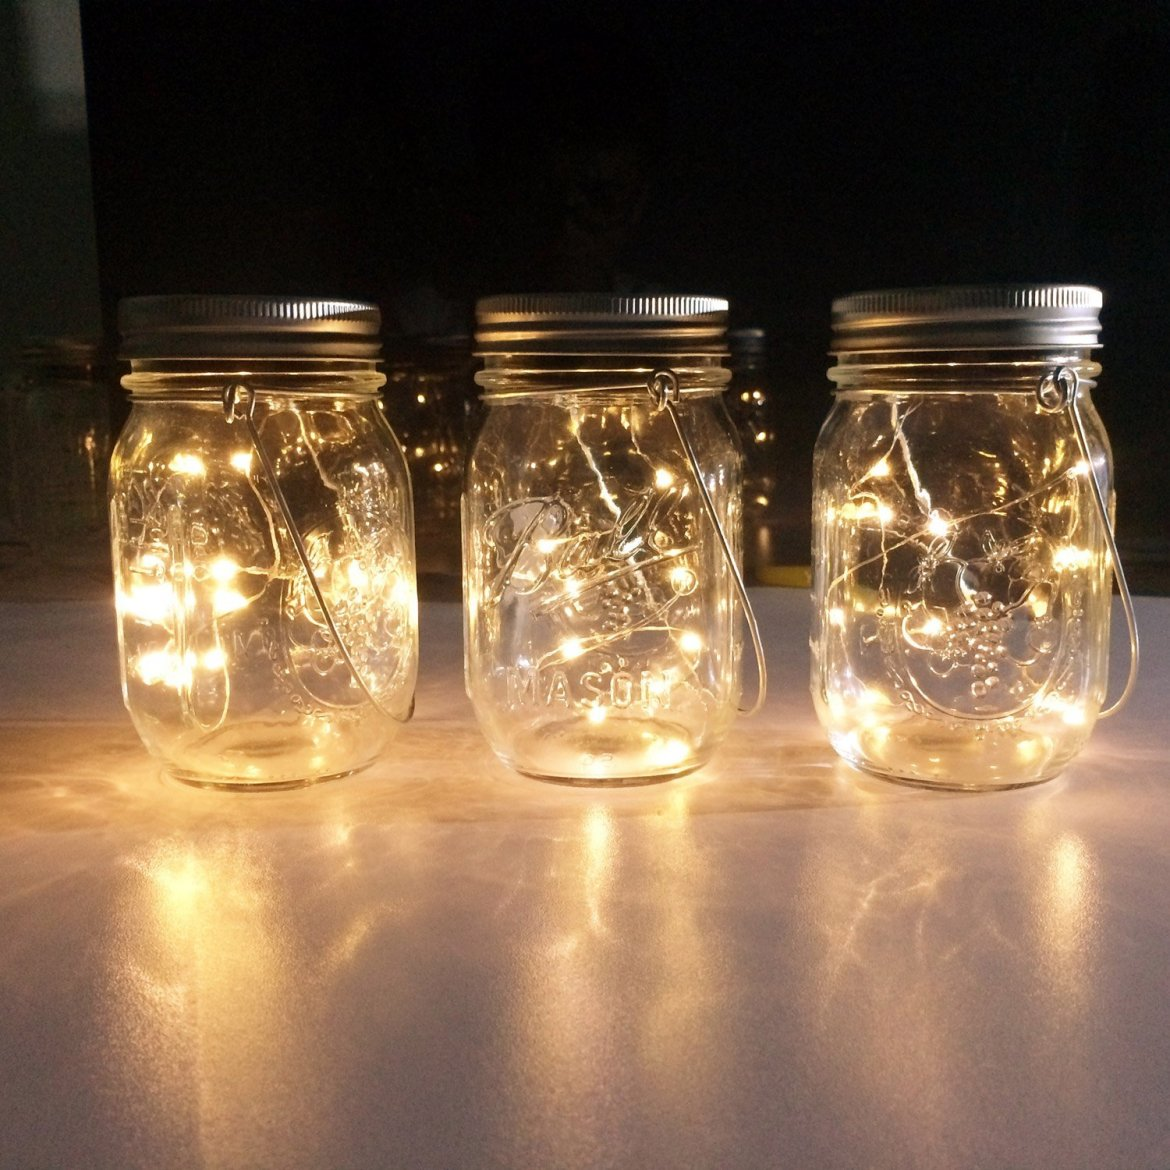 mason jar centerpieces diy idea with led fairy lights | http://amzn.to/2pACLkx